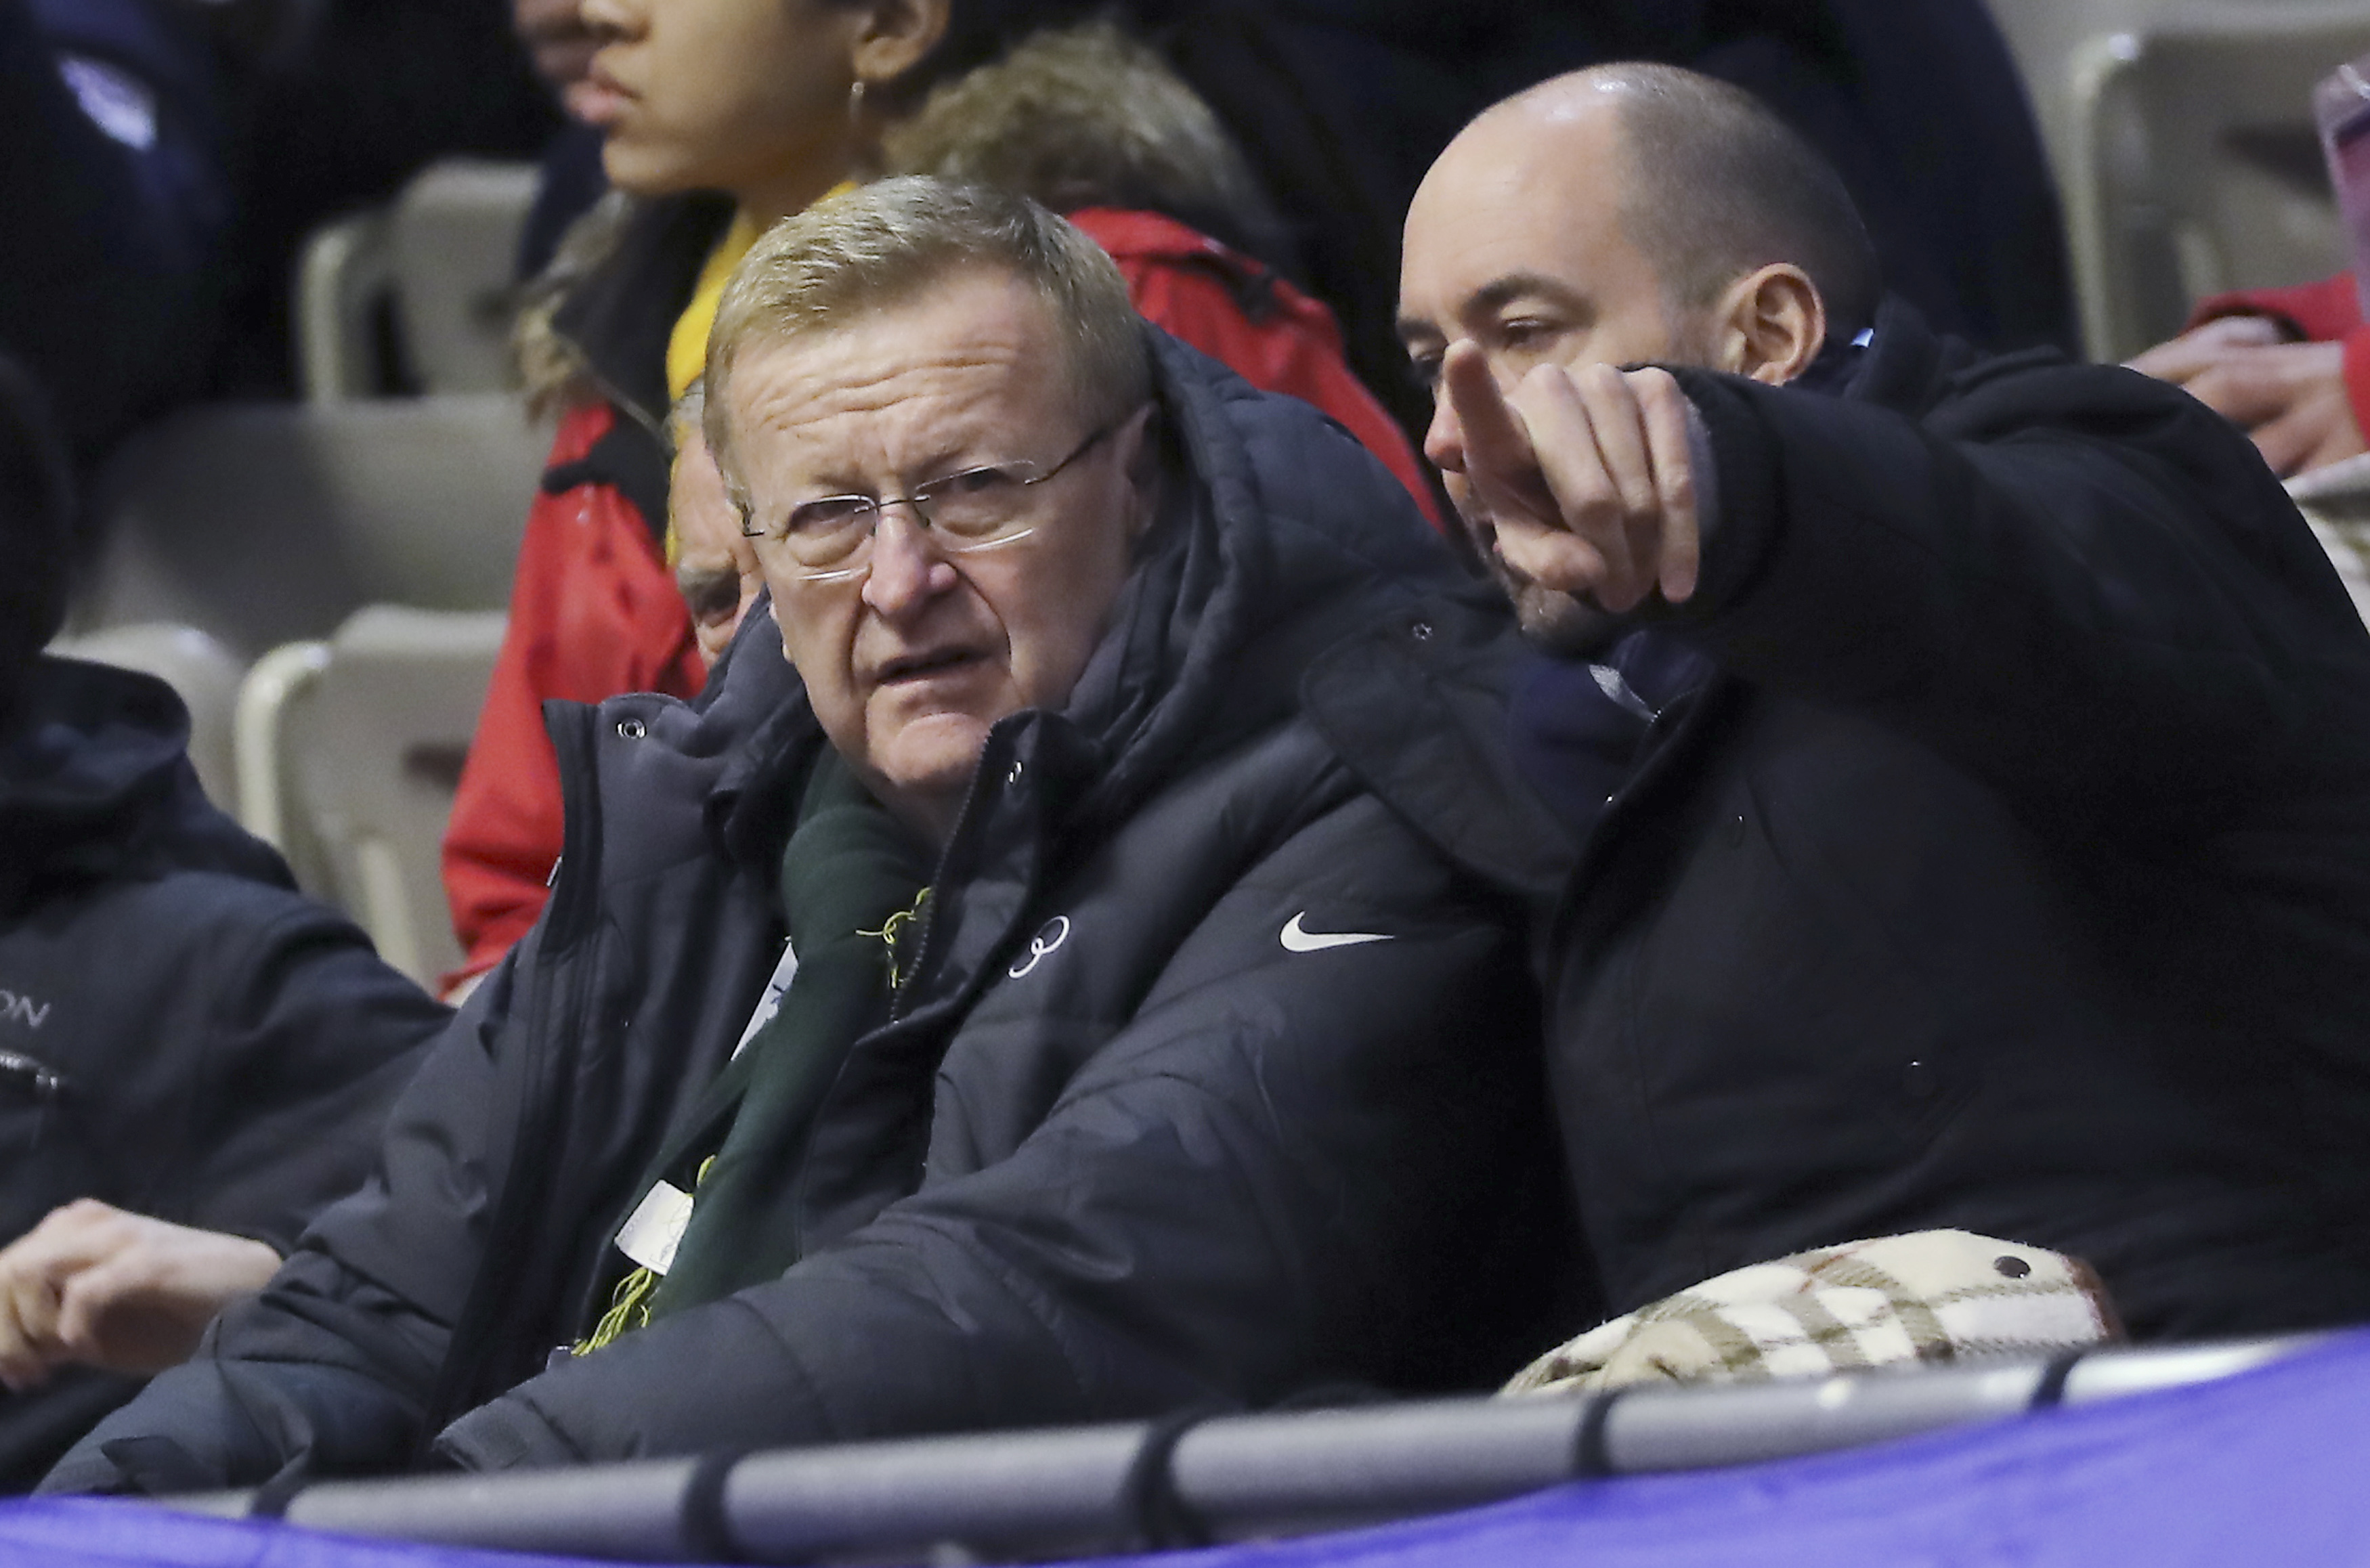 FILE - In this Feb. 20, 2017 file photo, the International Olympic Committee Vice President John Coates, left, looks at a men's 1500 meters heat of short track speed skating competition at the Asian Winter Games at Makomanai Indoor Skating Rink in Sapporo